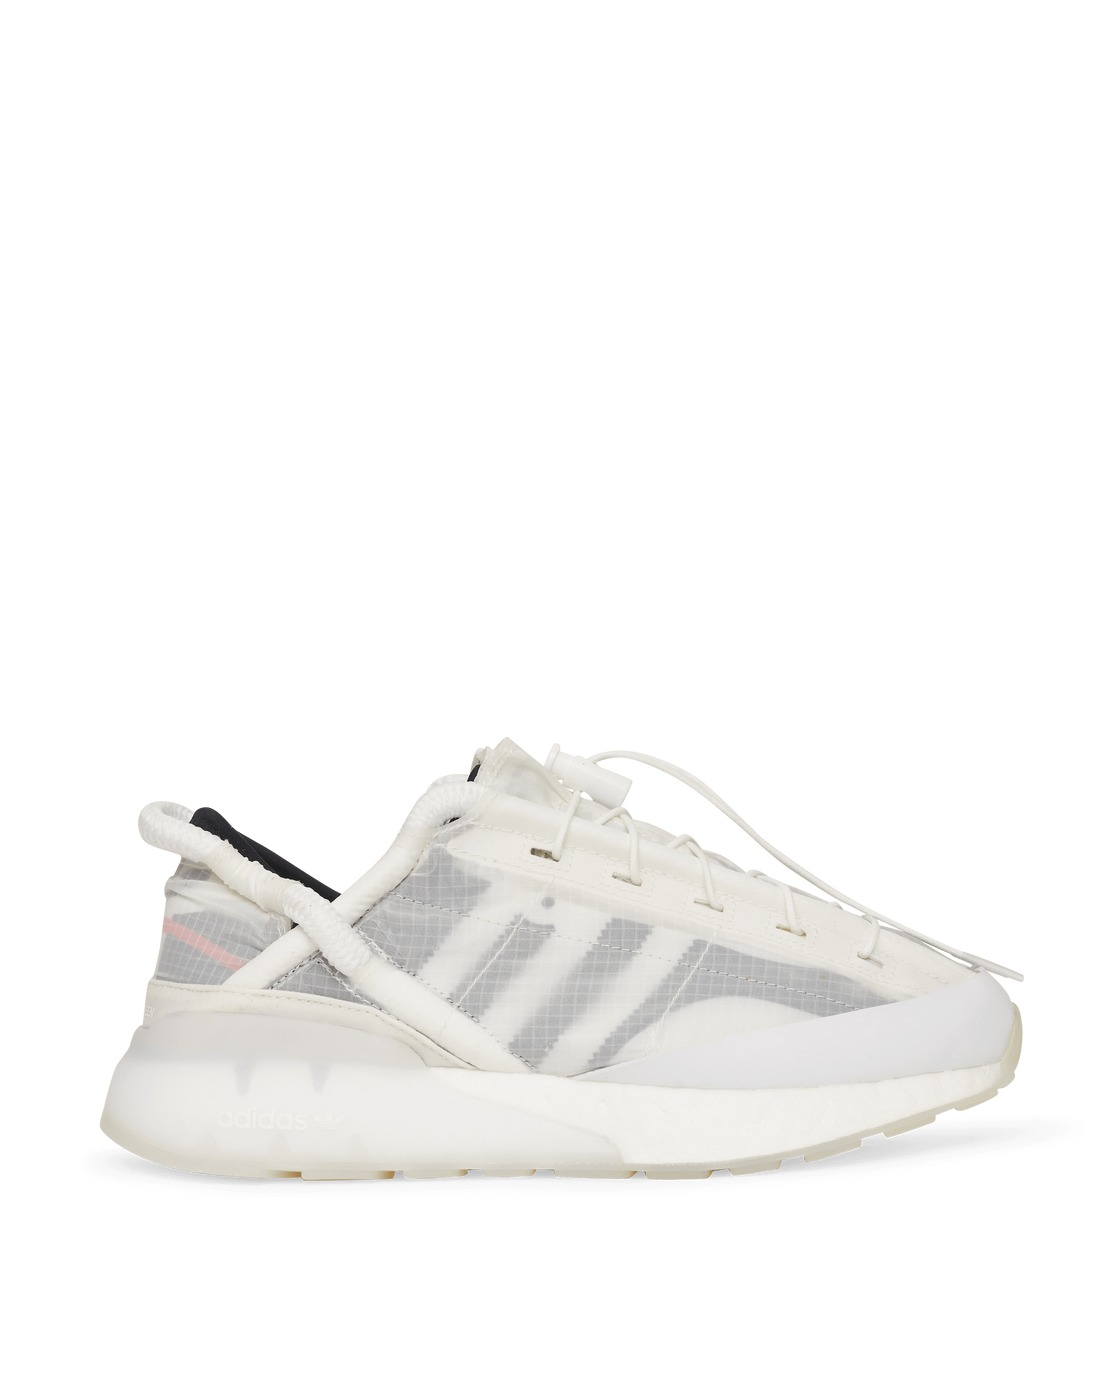 Photo: Adidas Originals Craig Green Zx 2k Phormar Sneakers White 38